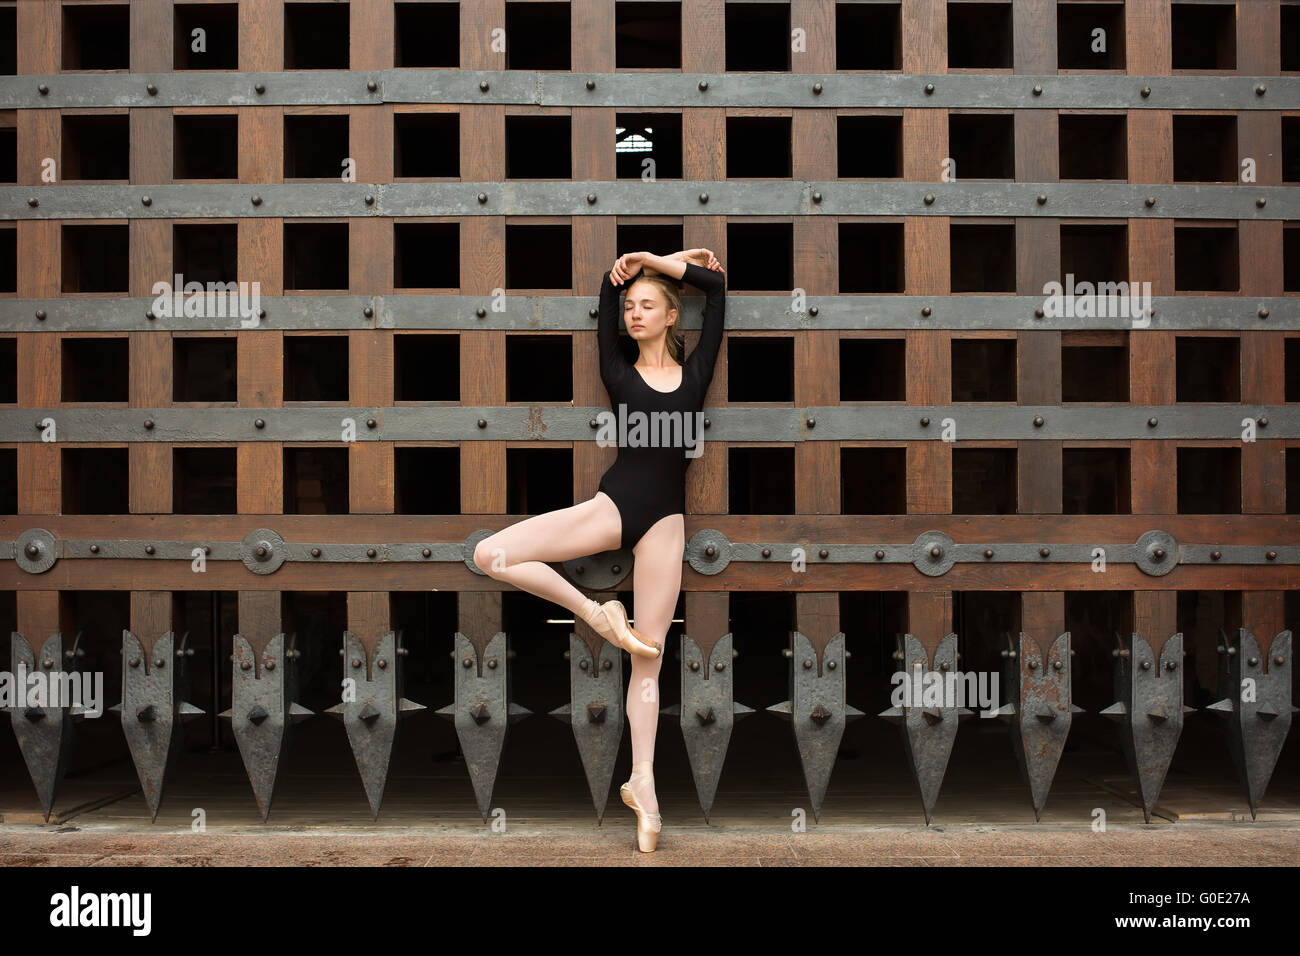 Slim dancer stands on one leg near the old gate - Stock Image